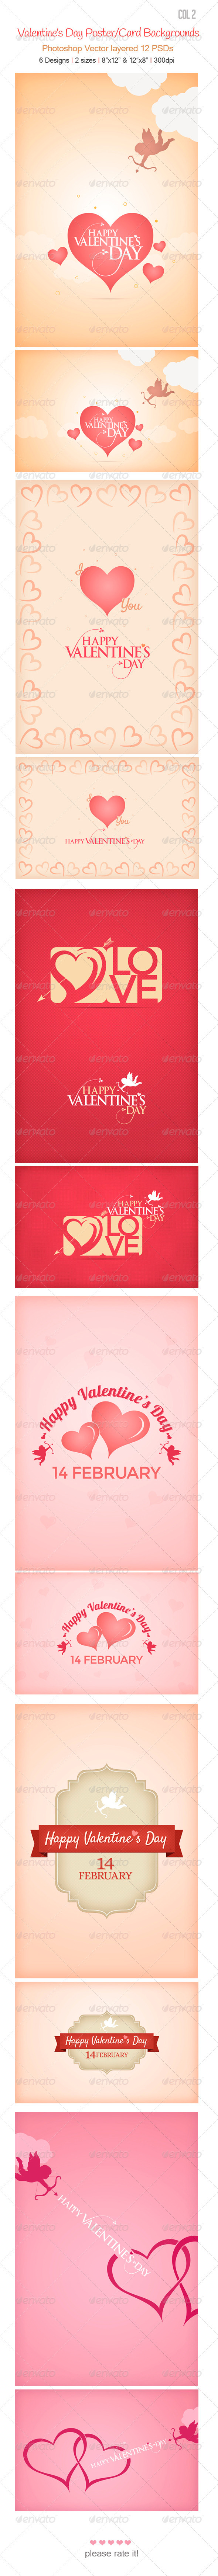 GraphicRiver Valentine s Day Backgrounds col 2 3716866